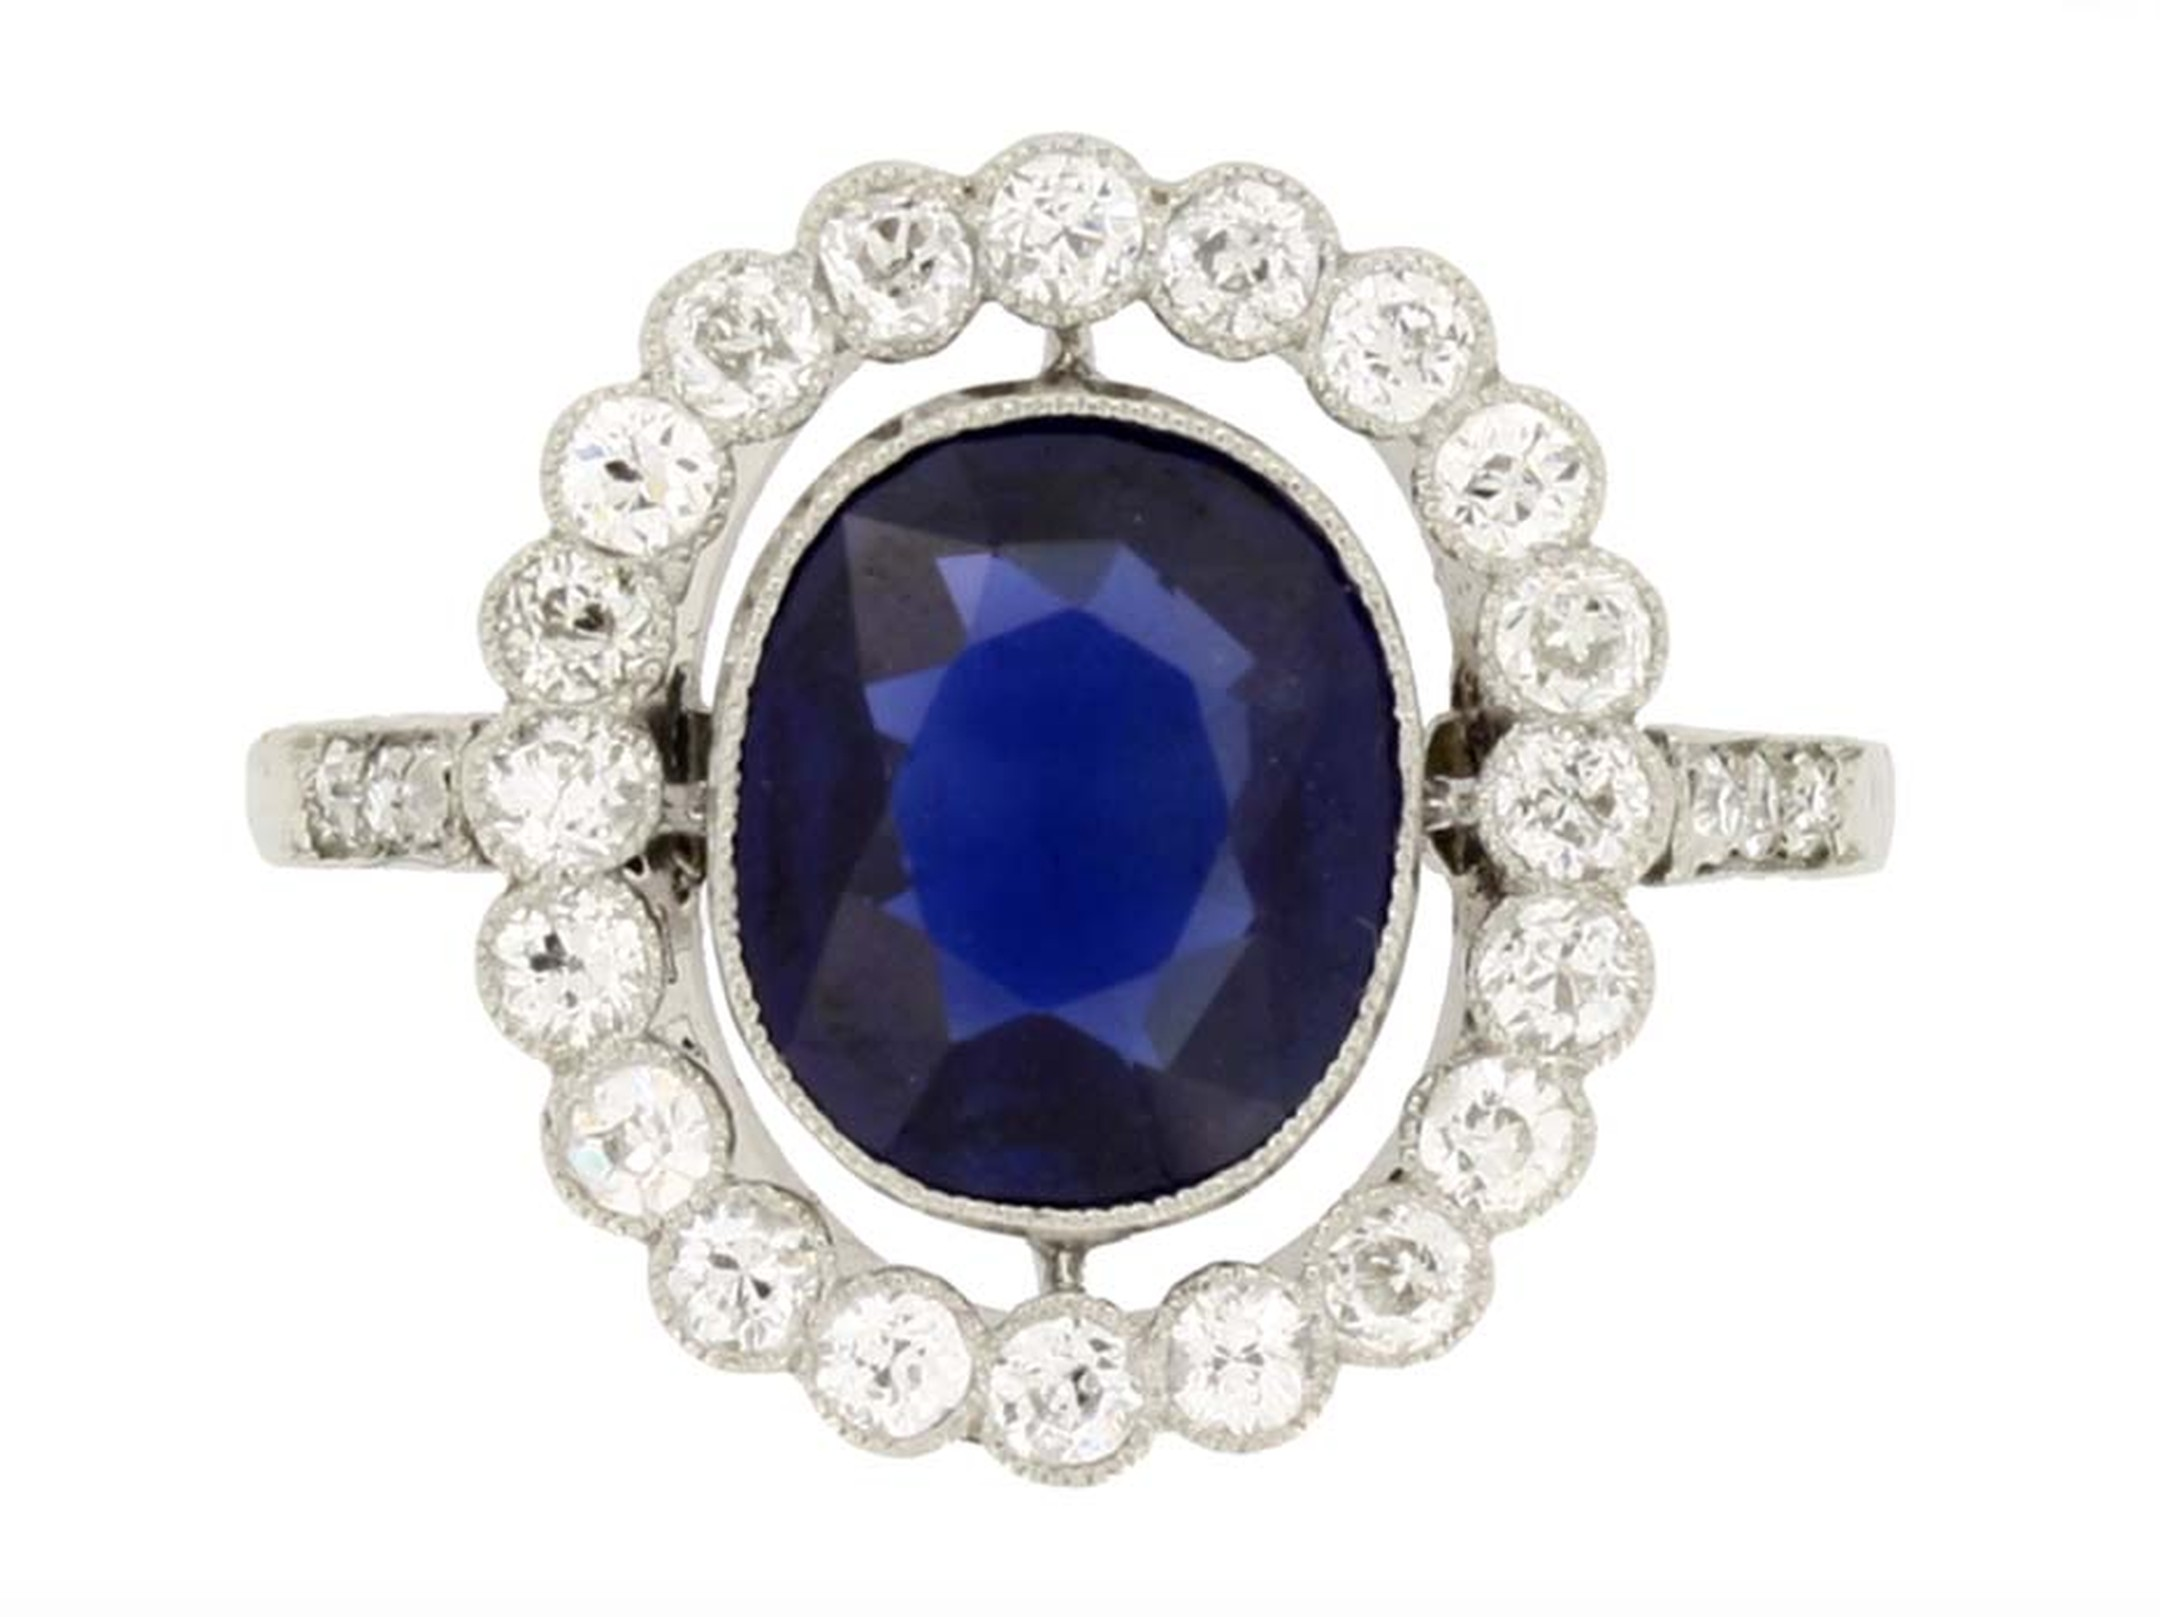 This Edwardian marquise sapphire and diamond cluster engagement ring circa 1910, available at Berganza, is set with a marquise shape, old-cut, natural unenhanced sapphire, encircled by a single row of round, old, single-cut diamonds of varying sizes, with